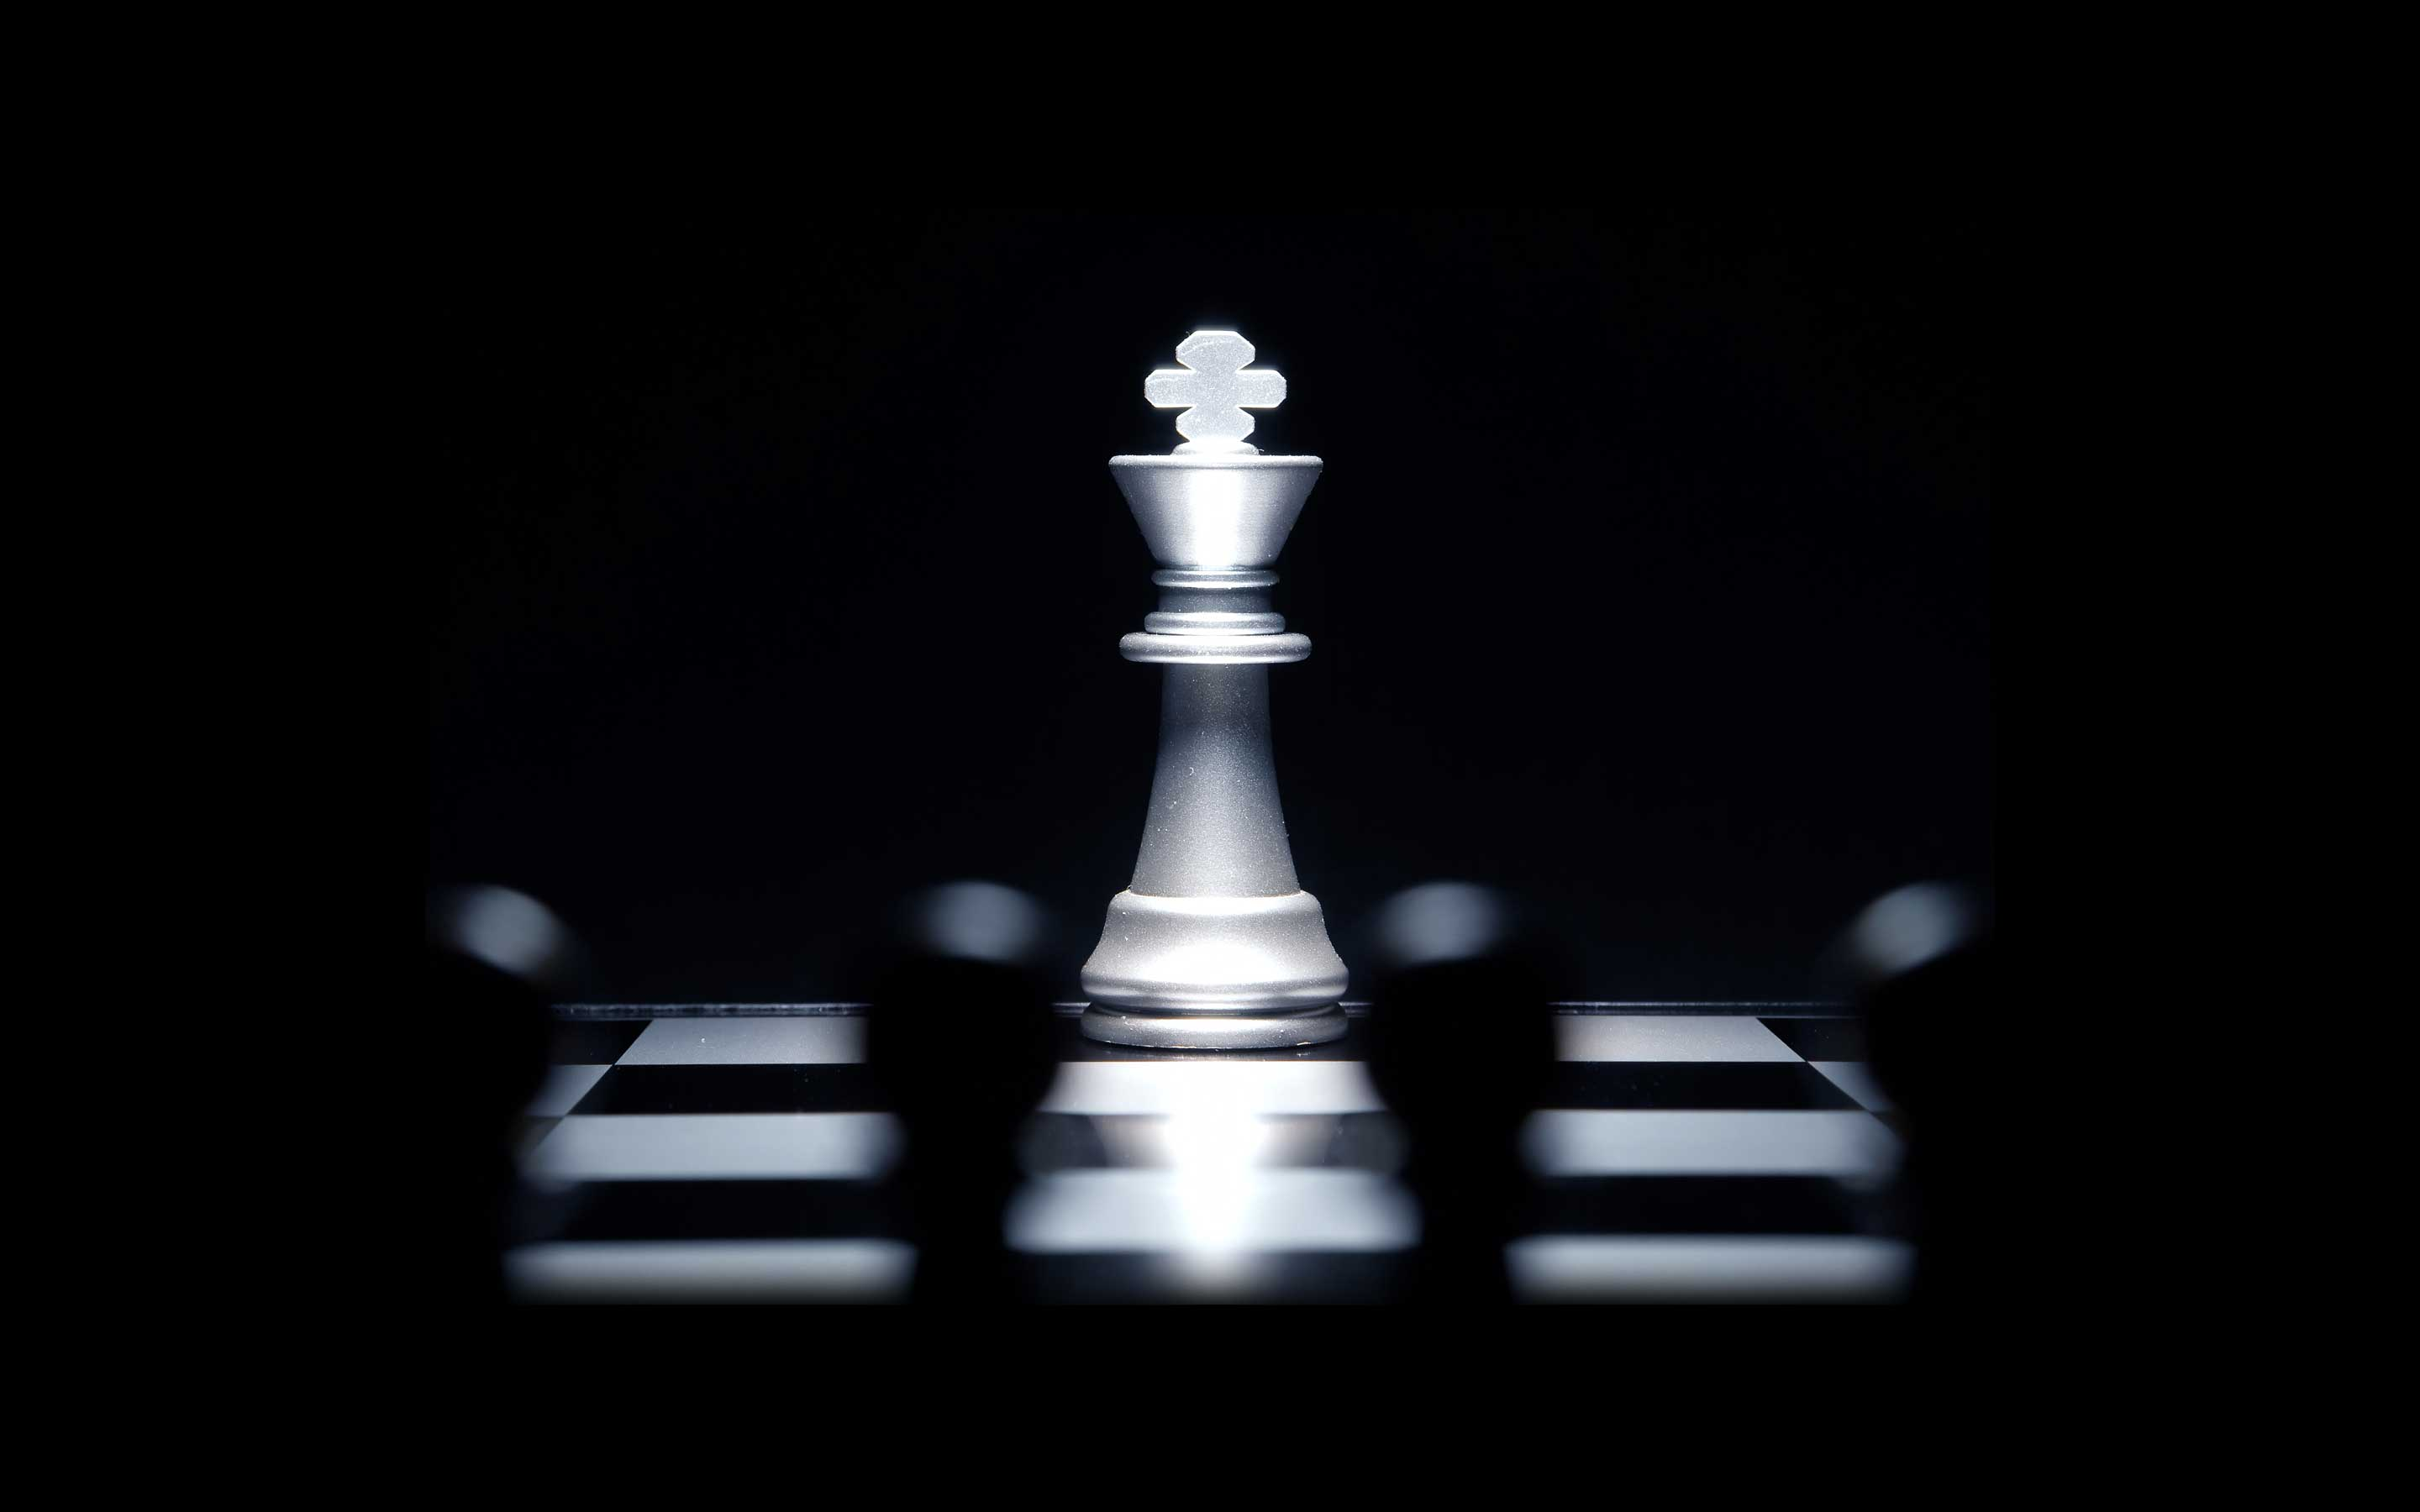 Chess King Hd Wallpaper Hq Pictures